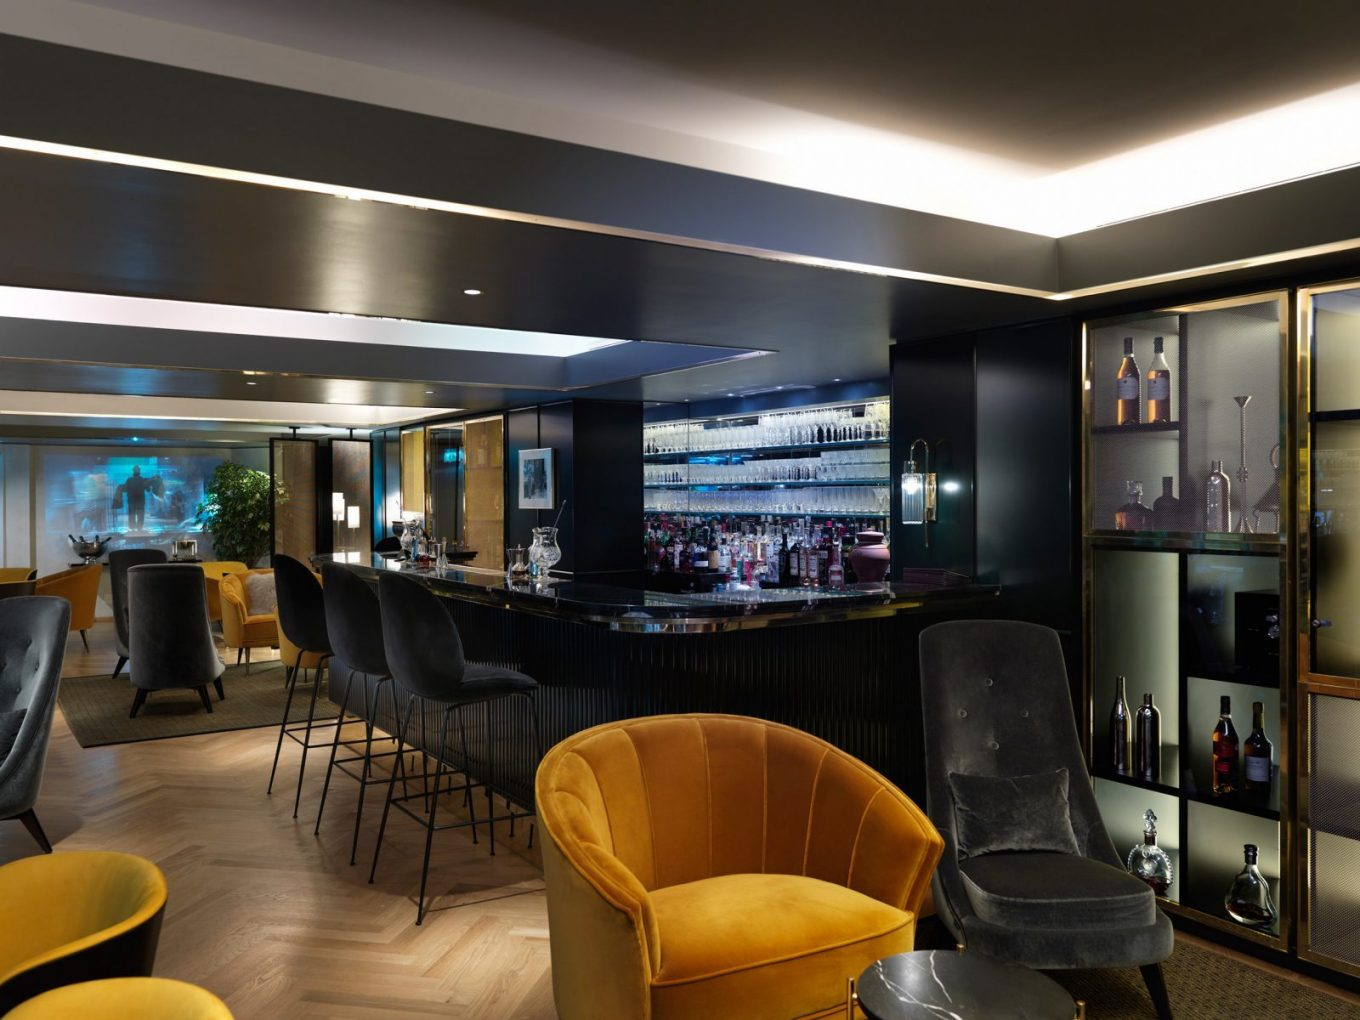 the athenaeum hotel in London Design Guide london design guide LONDON DESIGN GUIDE Athenaeum BAR